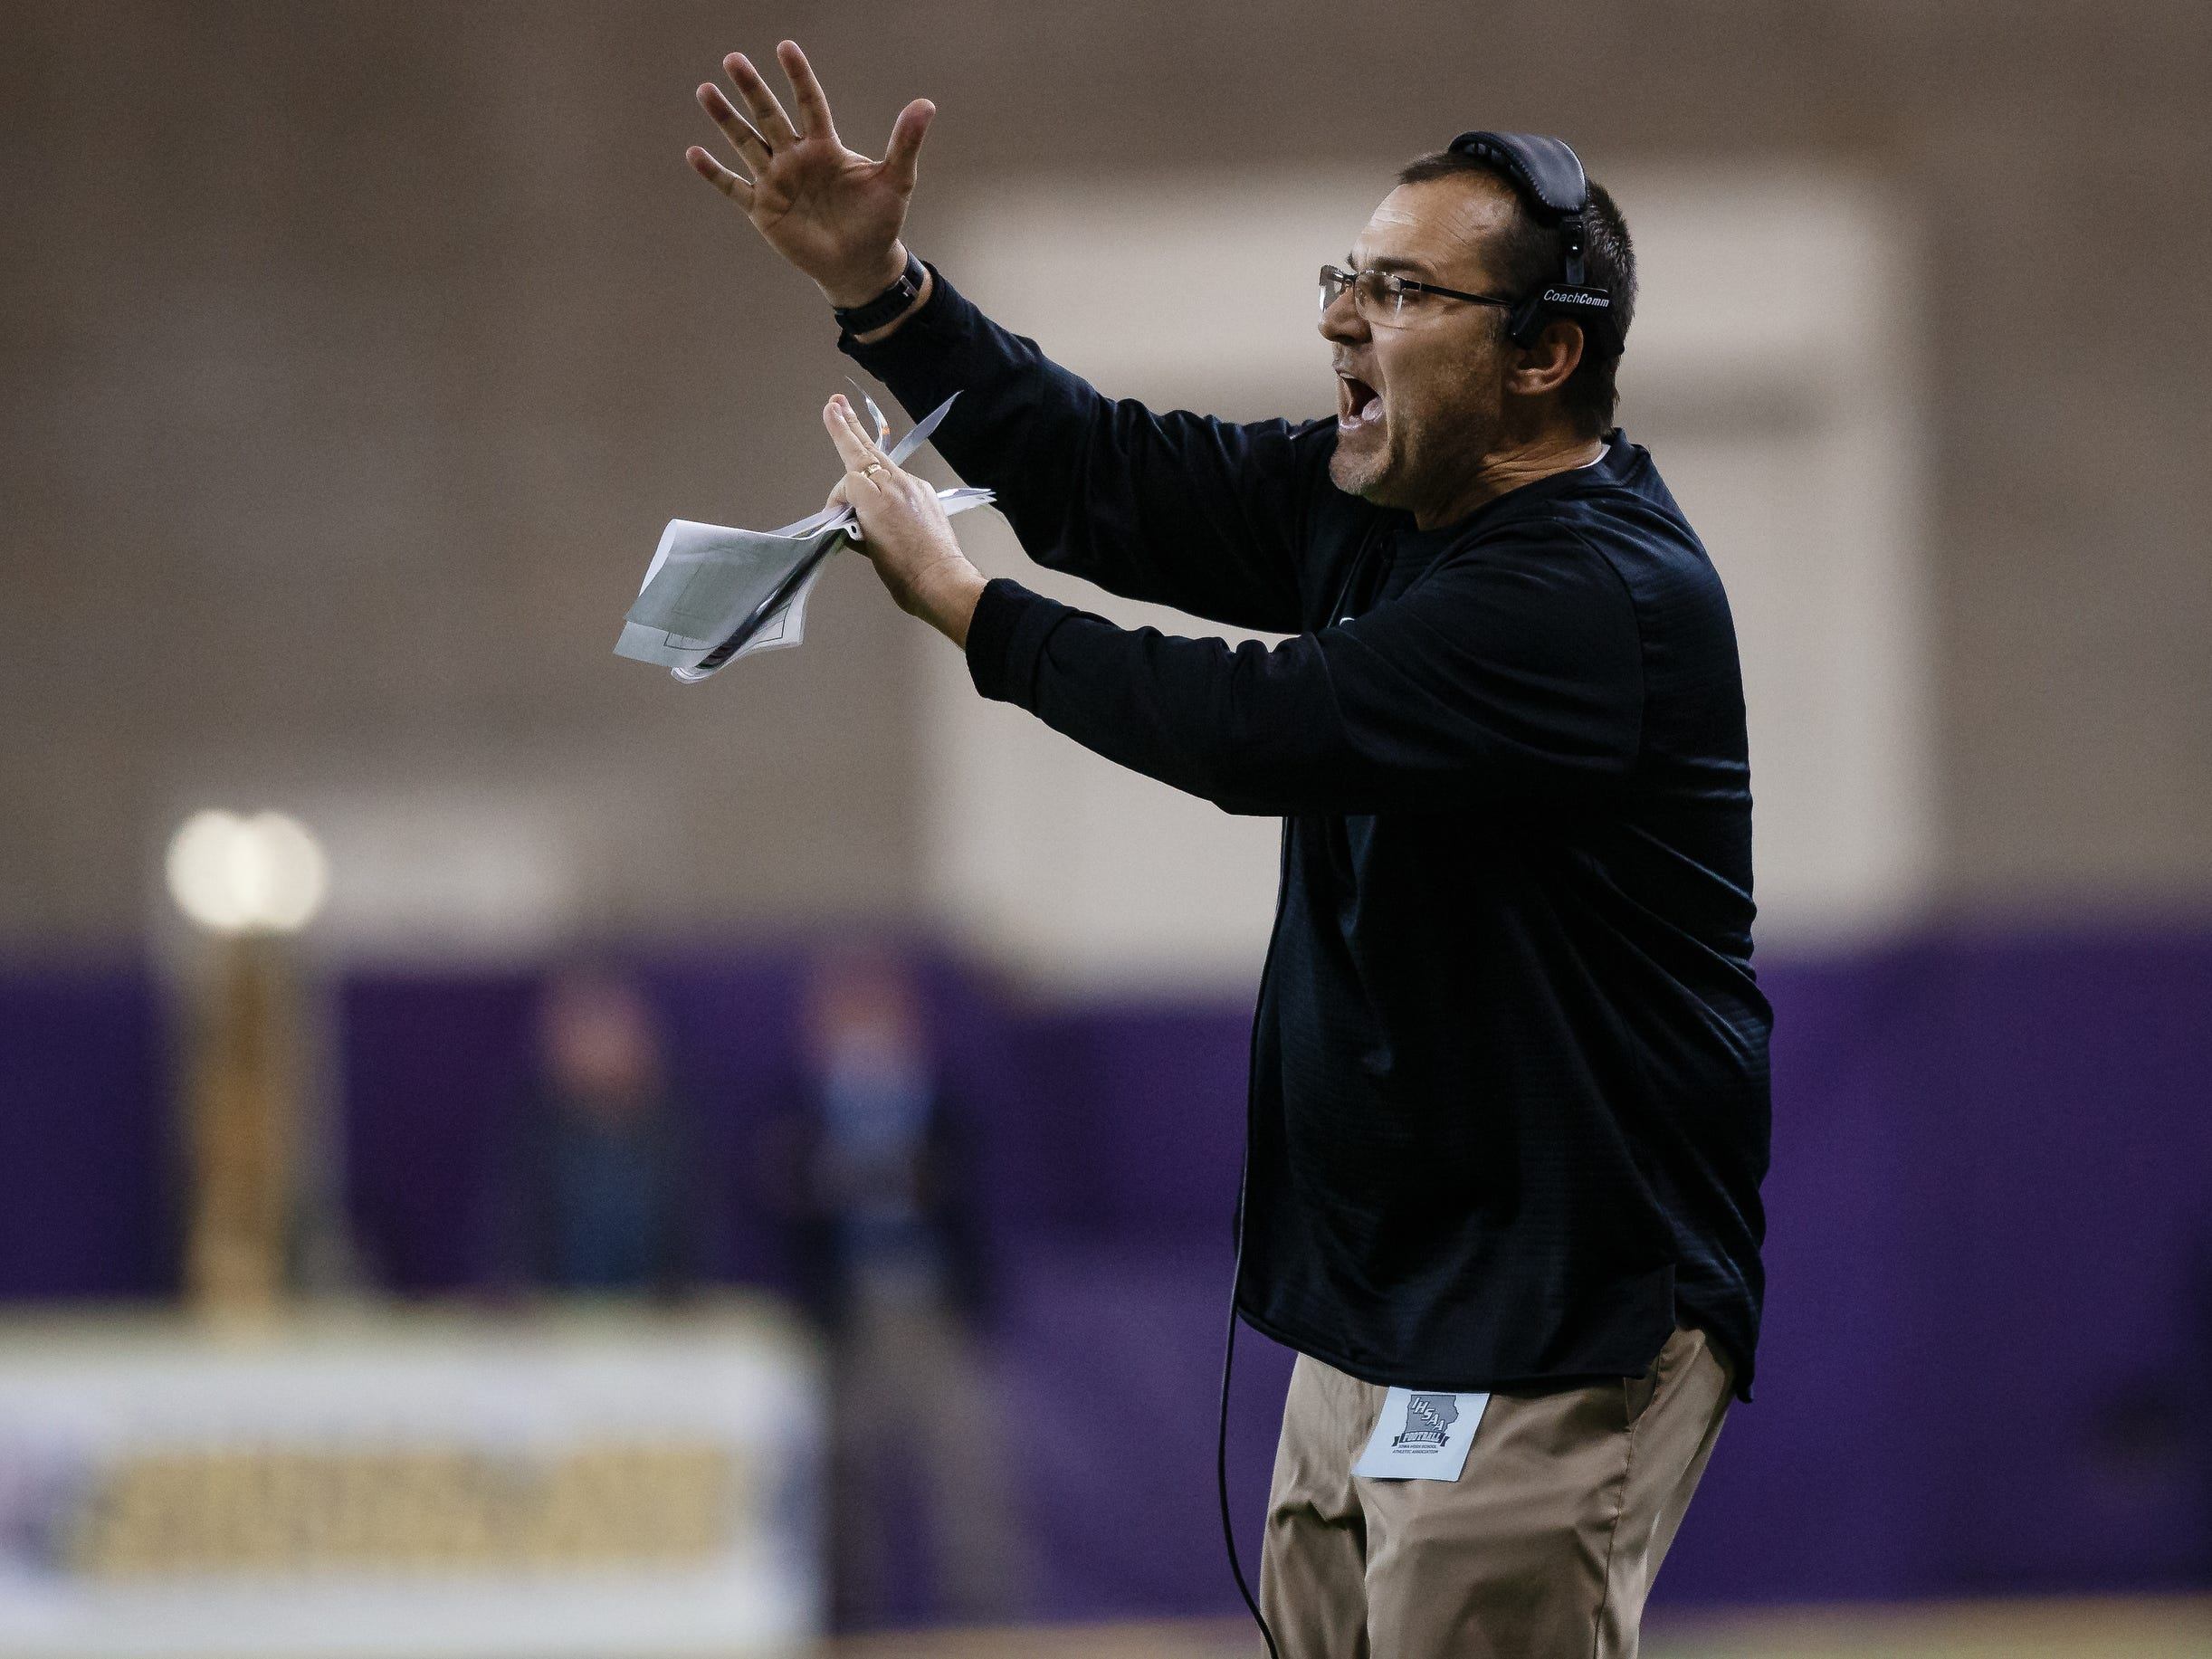 Dowling Catholic head coach Tom Wilson calls for a time out during their class 4A state championship football game on Friday, Nov. 16, 2018, in Cedar Falls. Dowling Catholic would go on to defeat Cedar Falls 22-16 and win their sixth state title.